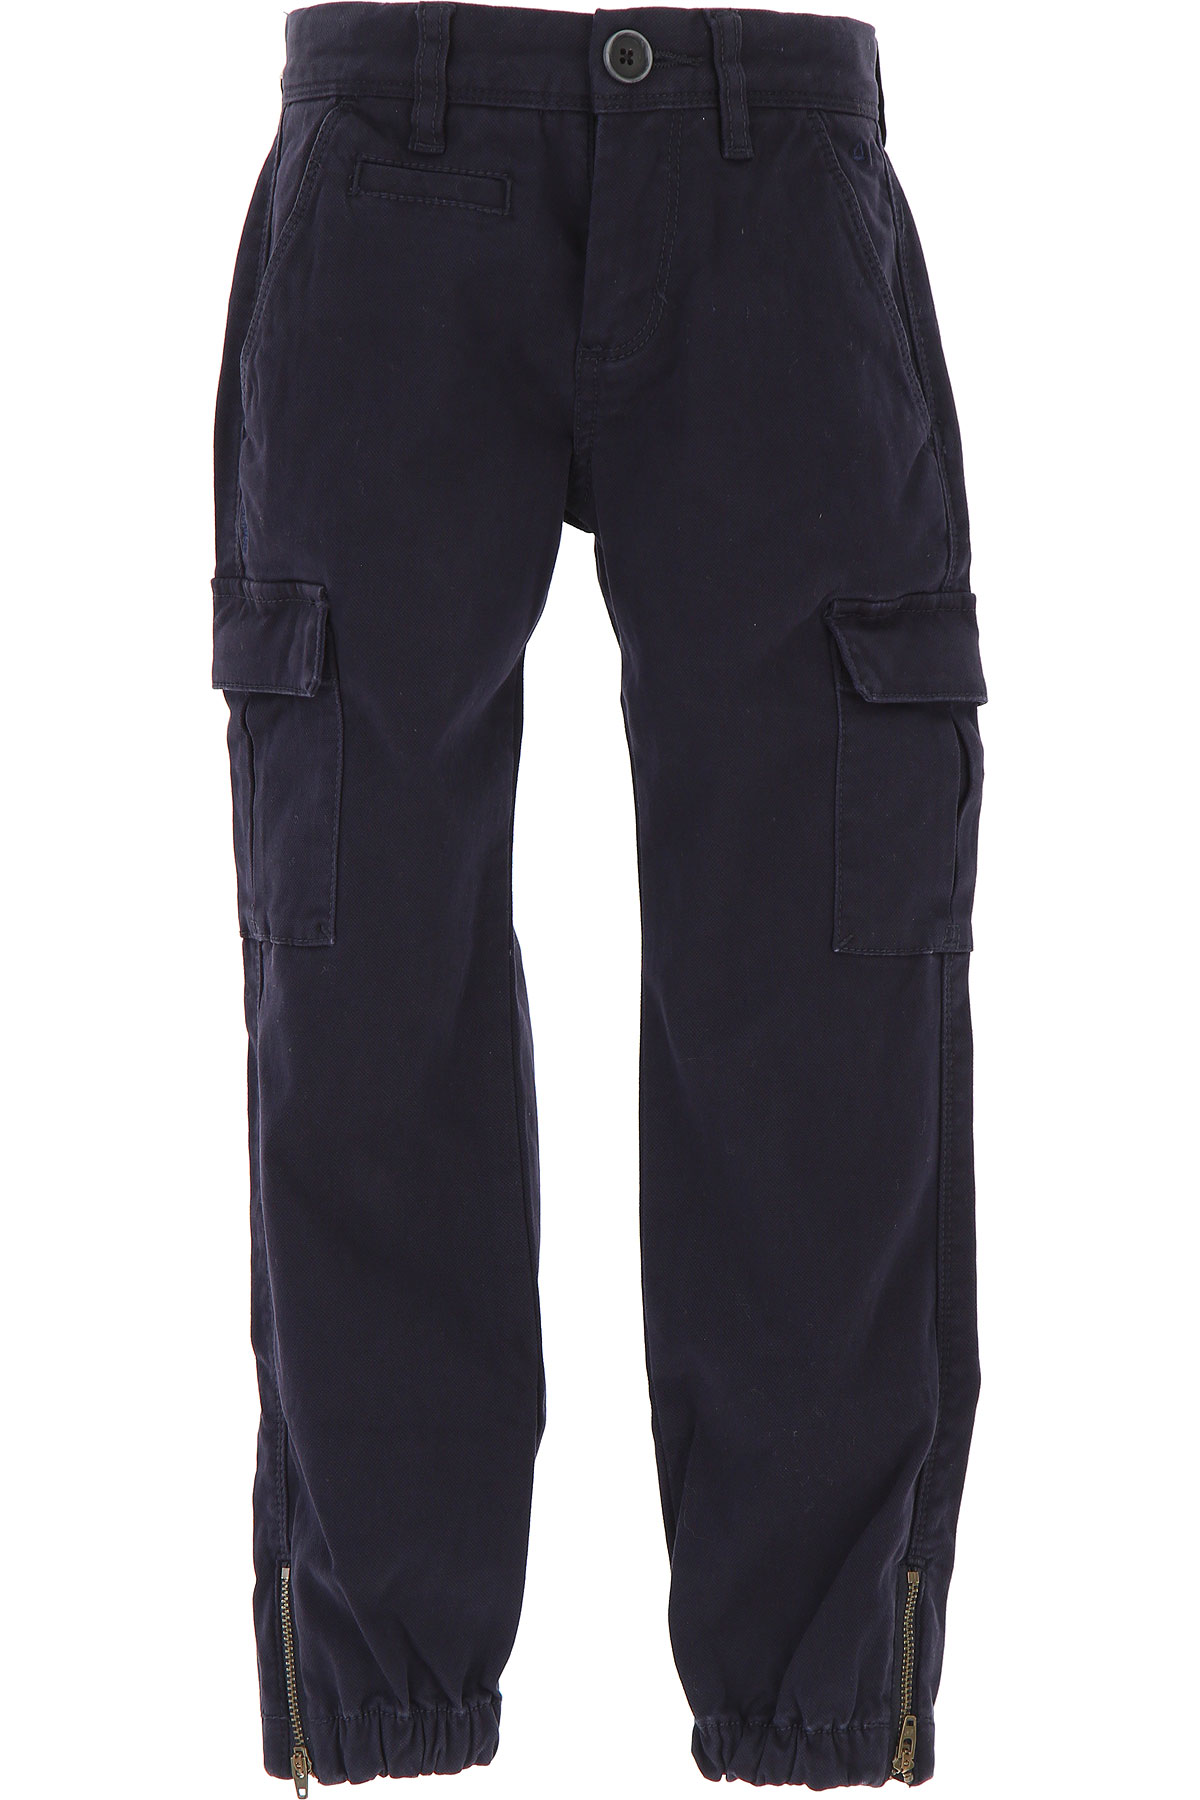 Image of Sun68 Kids Pants for Boys, navy, Cotton, 2017, 10Y 4Y